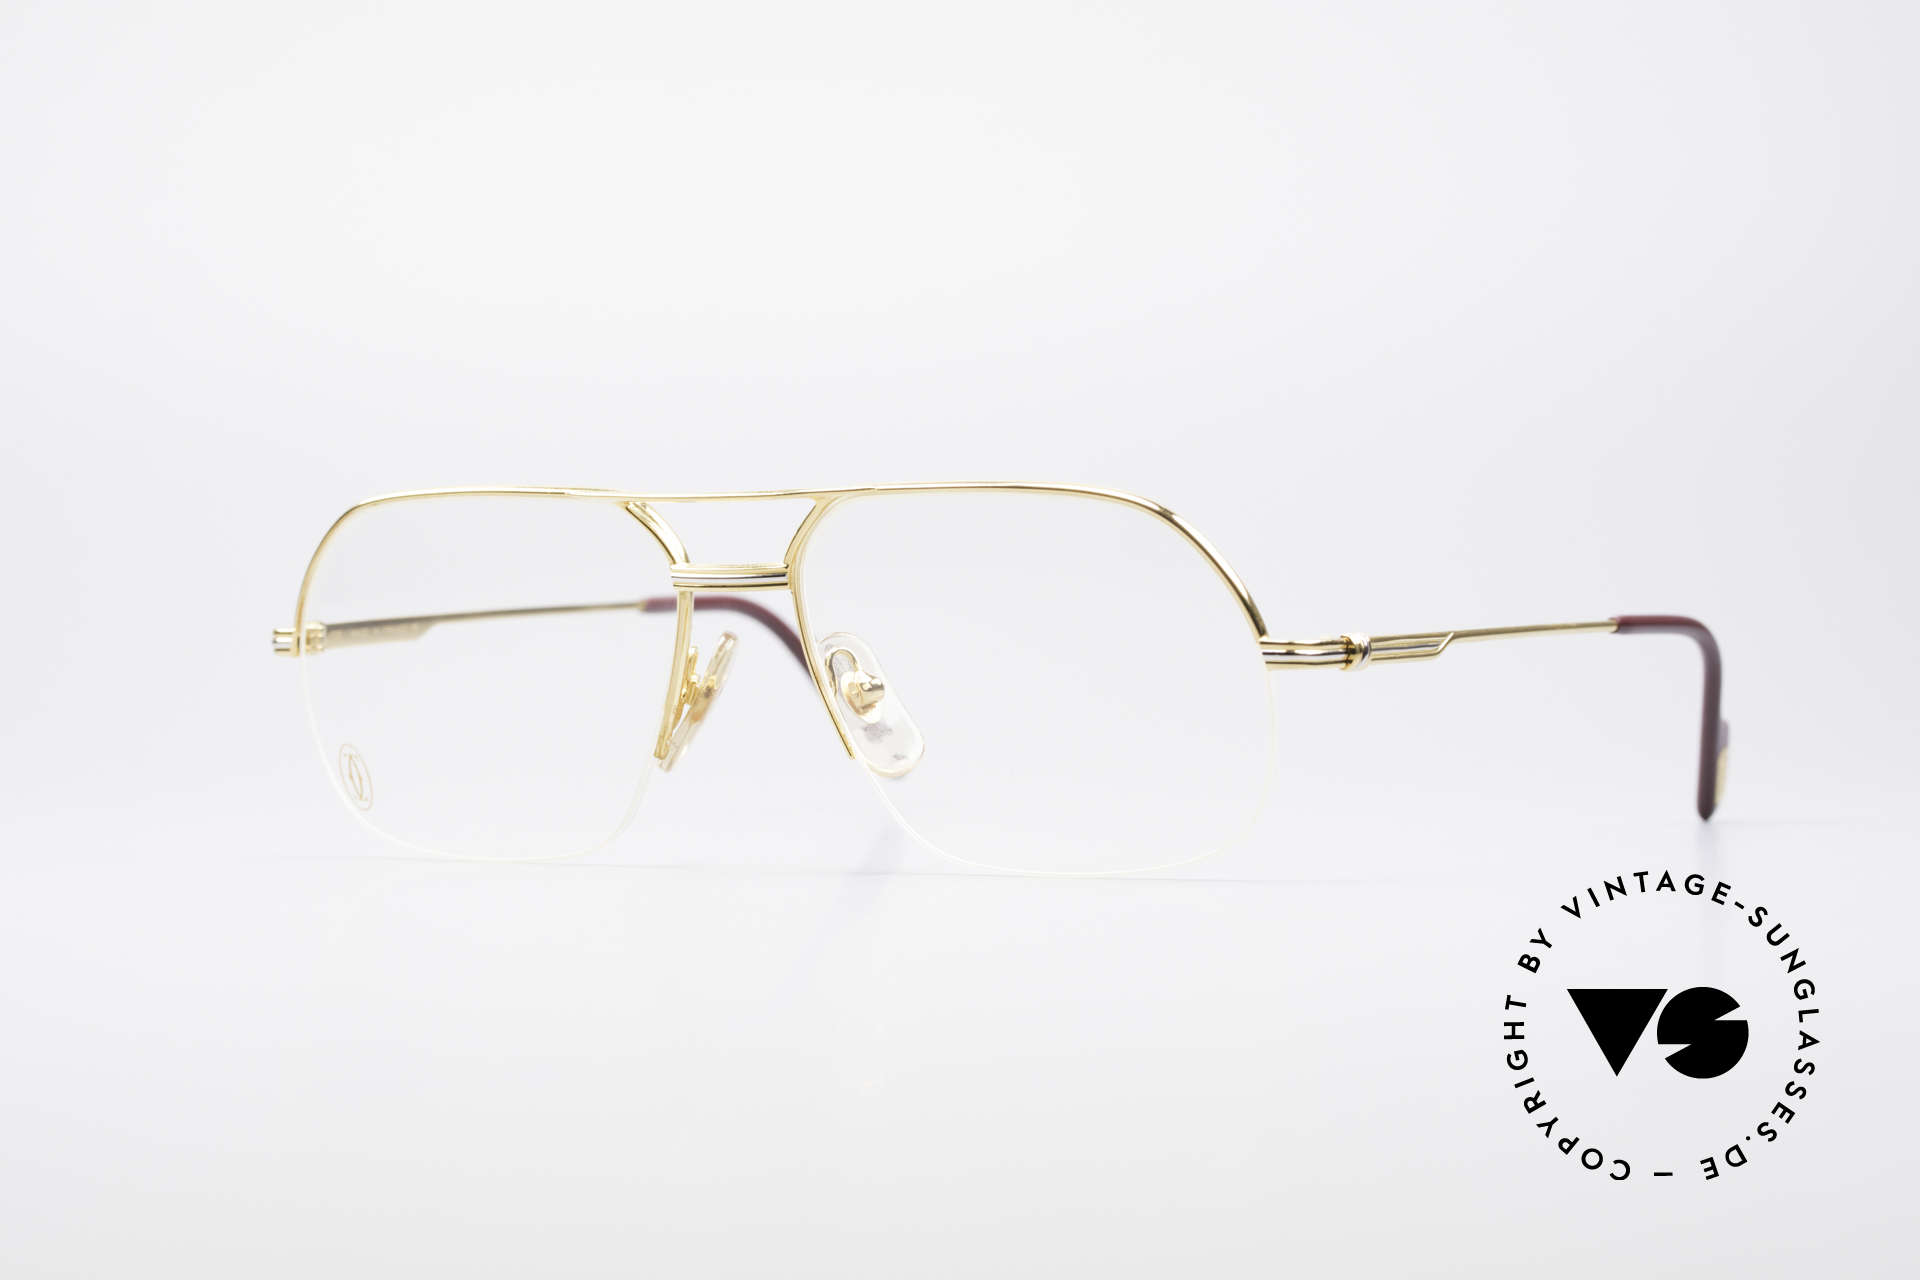 Cartier Orsay Luxury Vintage Eyeglasses, striking Cartier vintage eyeglass-frame, size 56°15, Made for Men